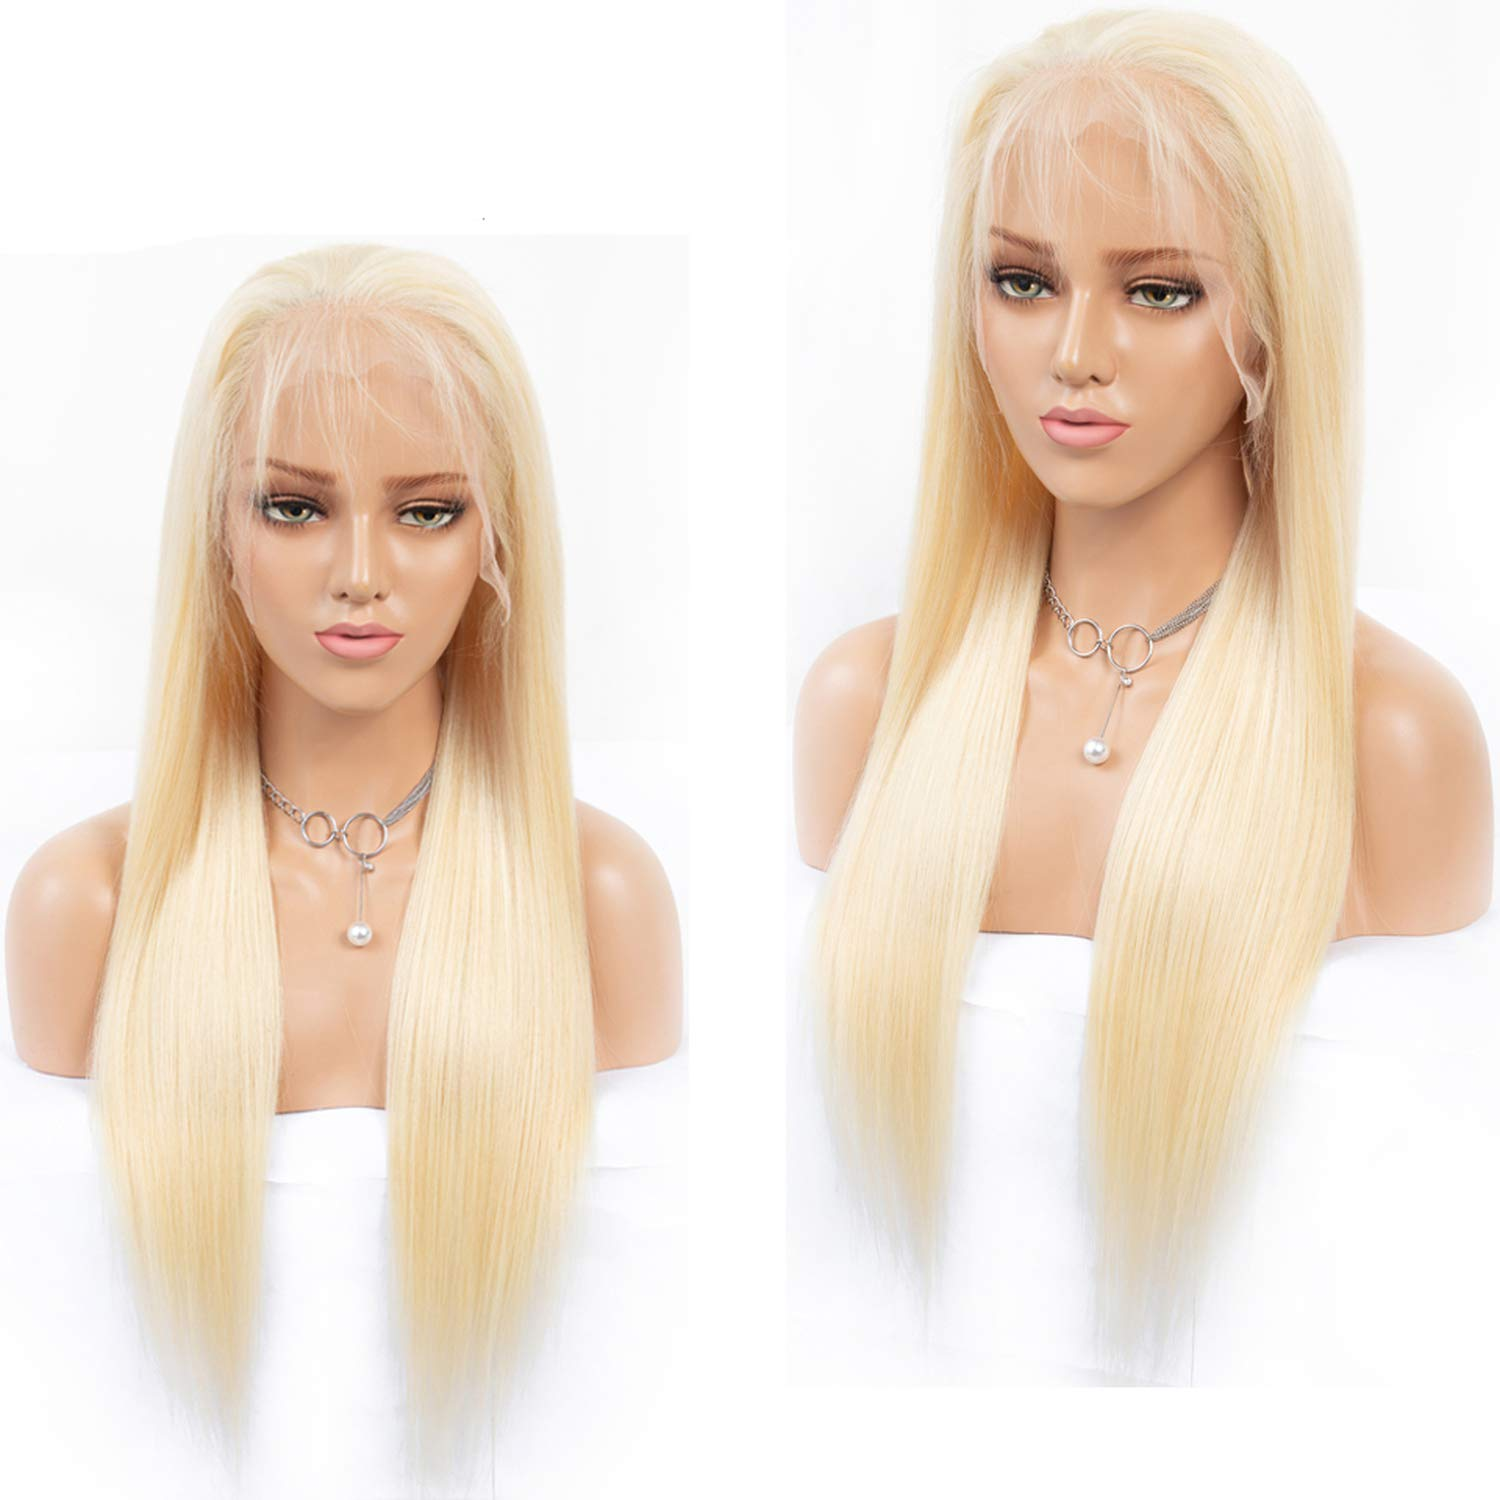 #613 Blonde Silk Base Wig With Transparent Lace Pre Plucked Straight Brazilian Full Lace Front Human Hair Wigs For Women,10inches,Full Lace Wig 61UZqaJk81L._SL1500_